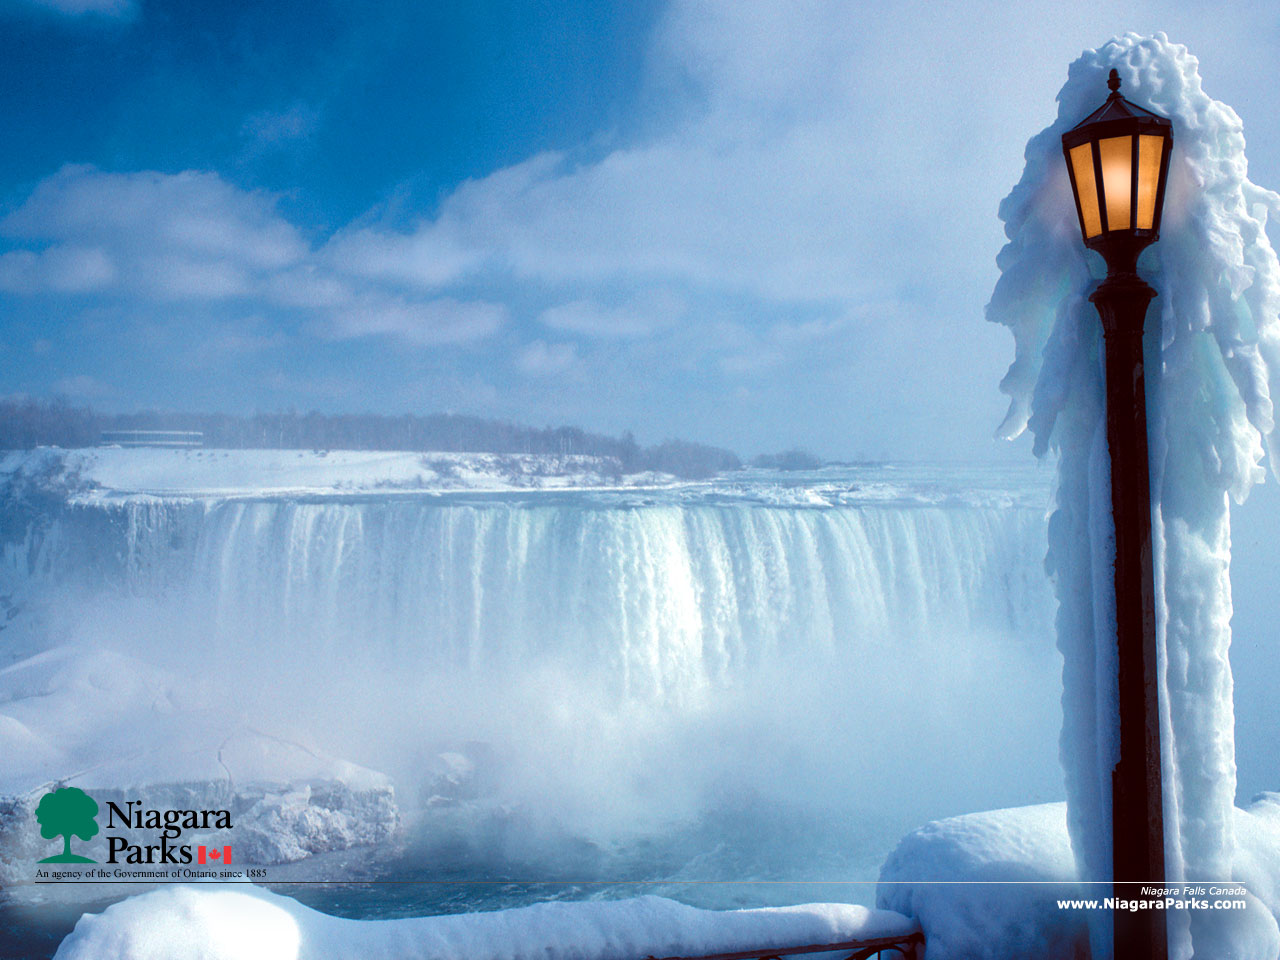 niagarafalls-Ice-december-view-Beautiful-background-for-widescreen-desktop-PC